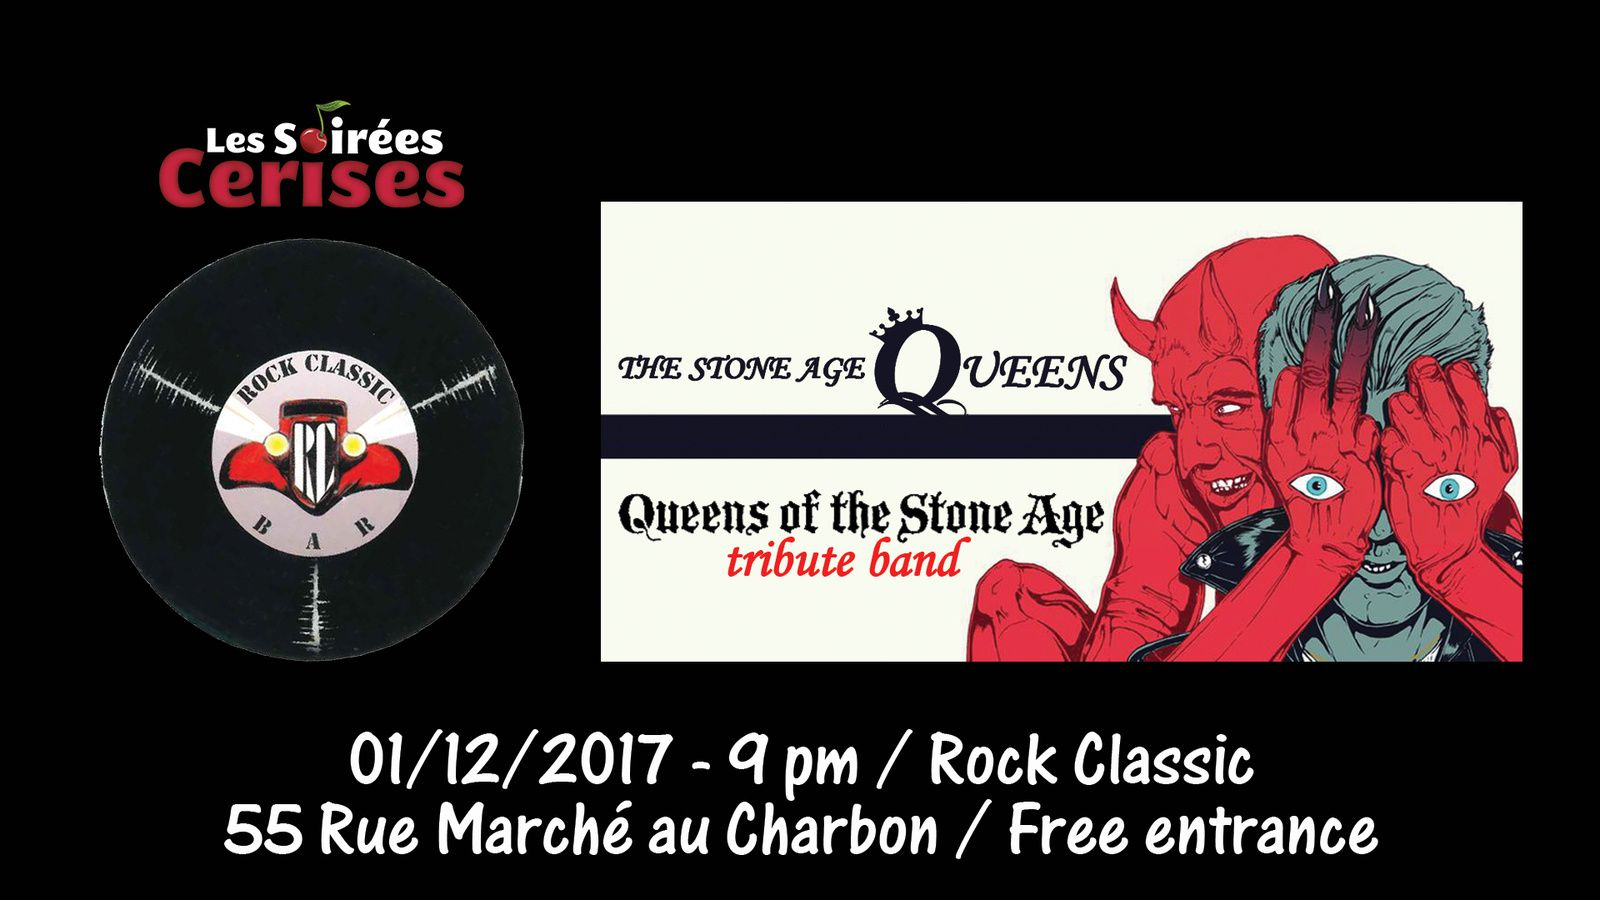 ▶ The Stone Age Queens (Queens of the Stone Age tribute band) @ Rock Classic - 01/12/2017 - 21h00 - Entrée gratuite !